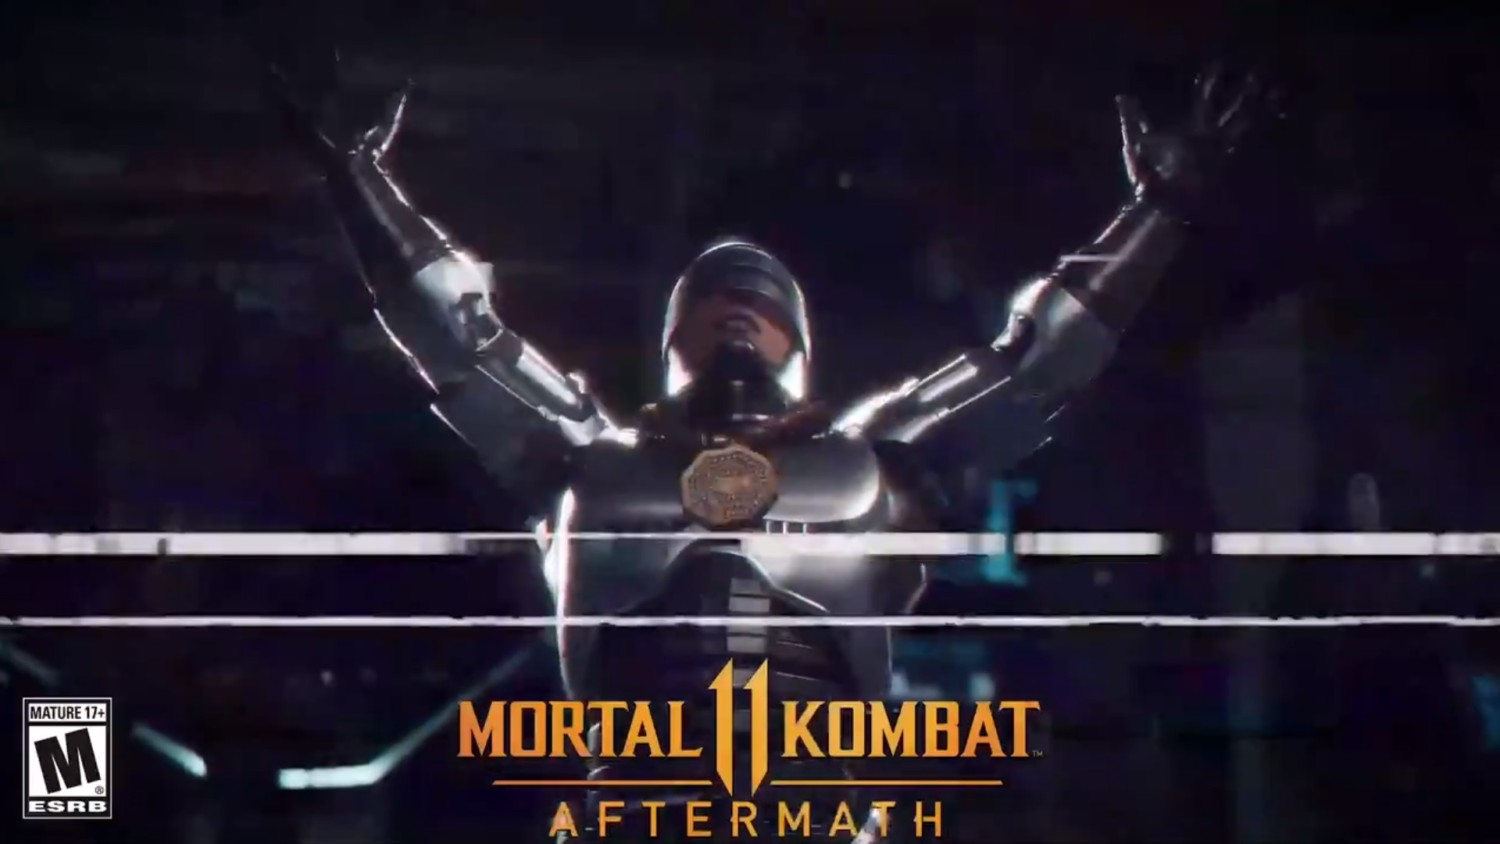 Here's A First Look At RoboCop's Friendship Finisher In Mortal Kombat 11: Aftermath | NintendoSoup